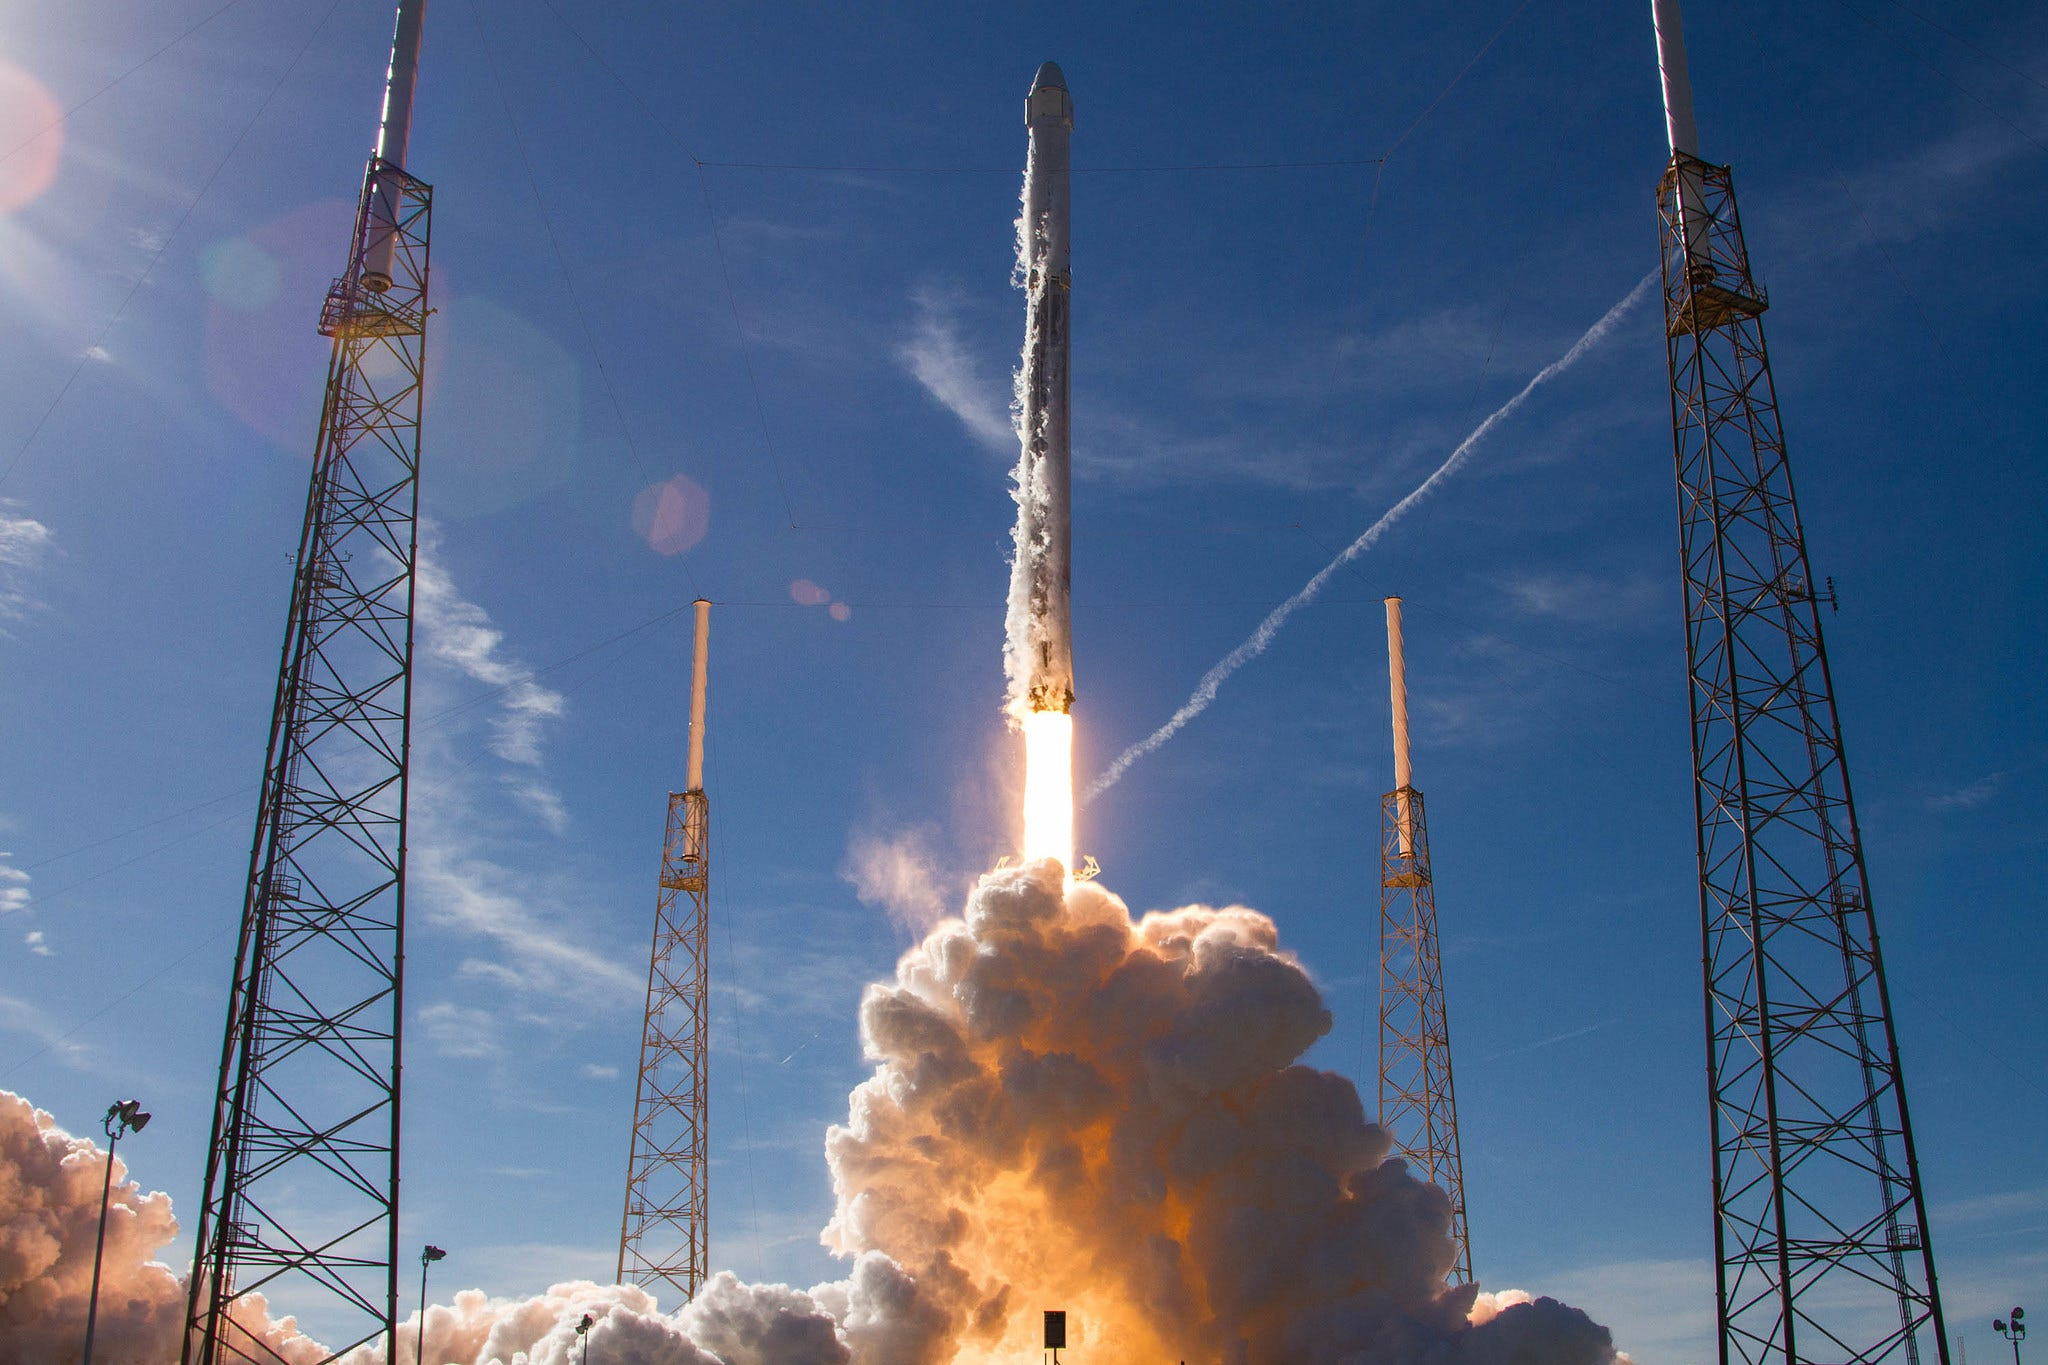 636513668107343503-spx-crs13-launch After 2016 launch pad explosion, SpaceX updating Falcon 9 for astronauts